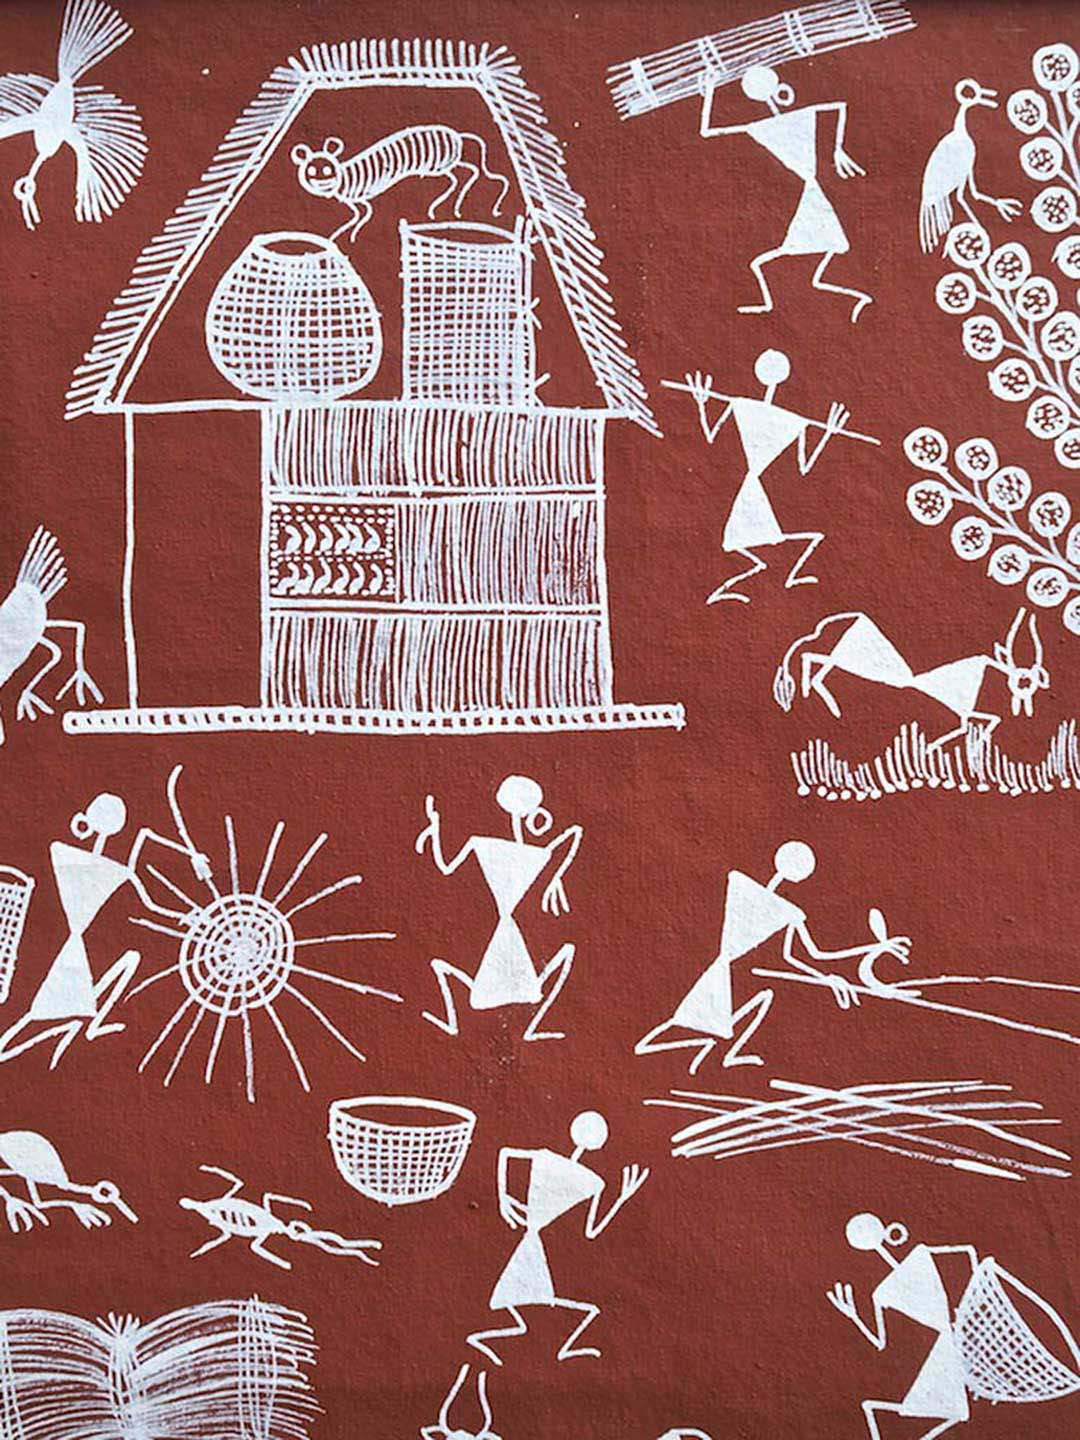 Warli painting of a Mouse Stealing Food